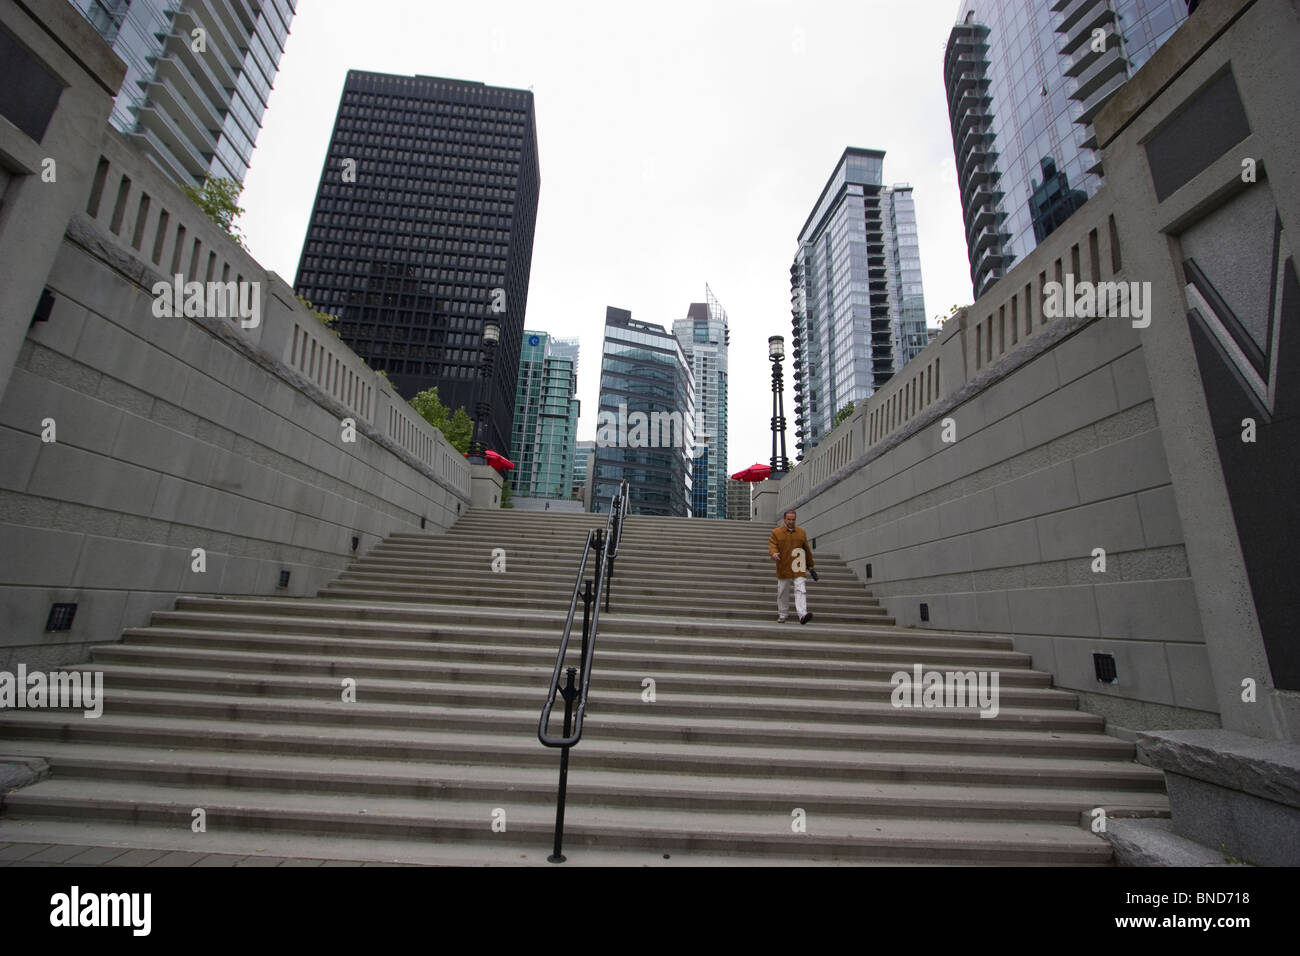 Residential properties, housing near Coal Harbour, Vancouver, with steps - Stock Image